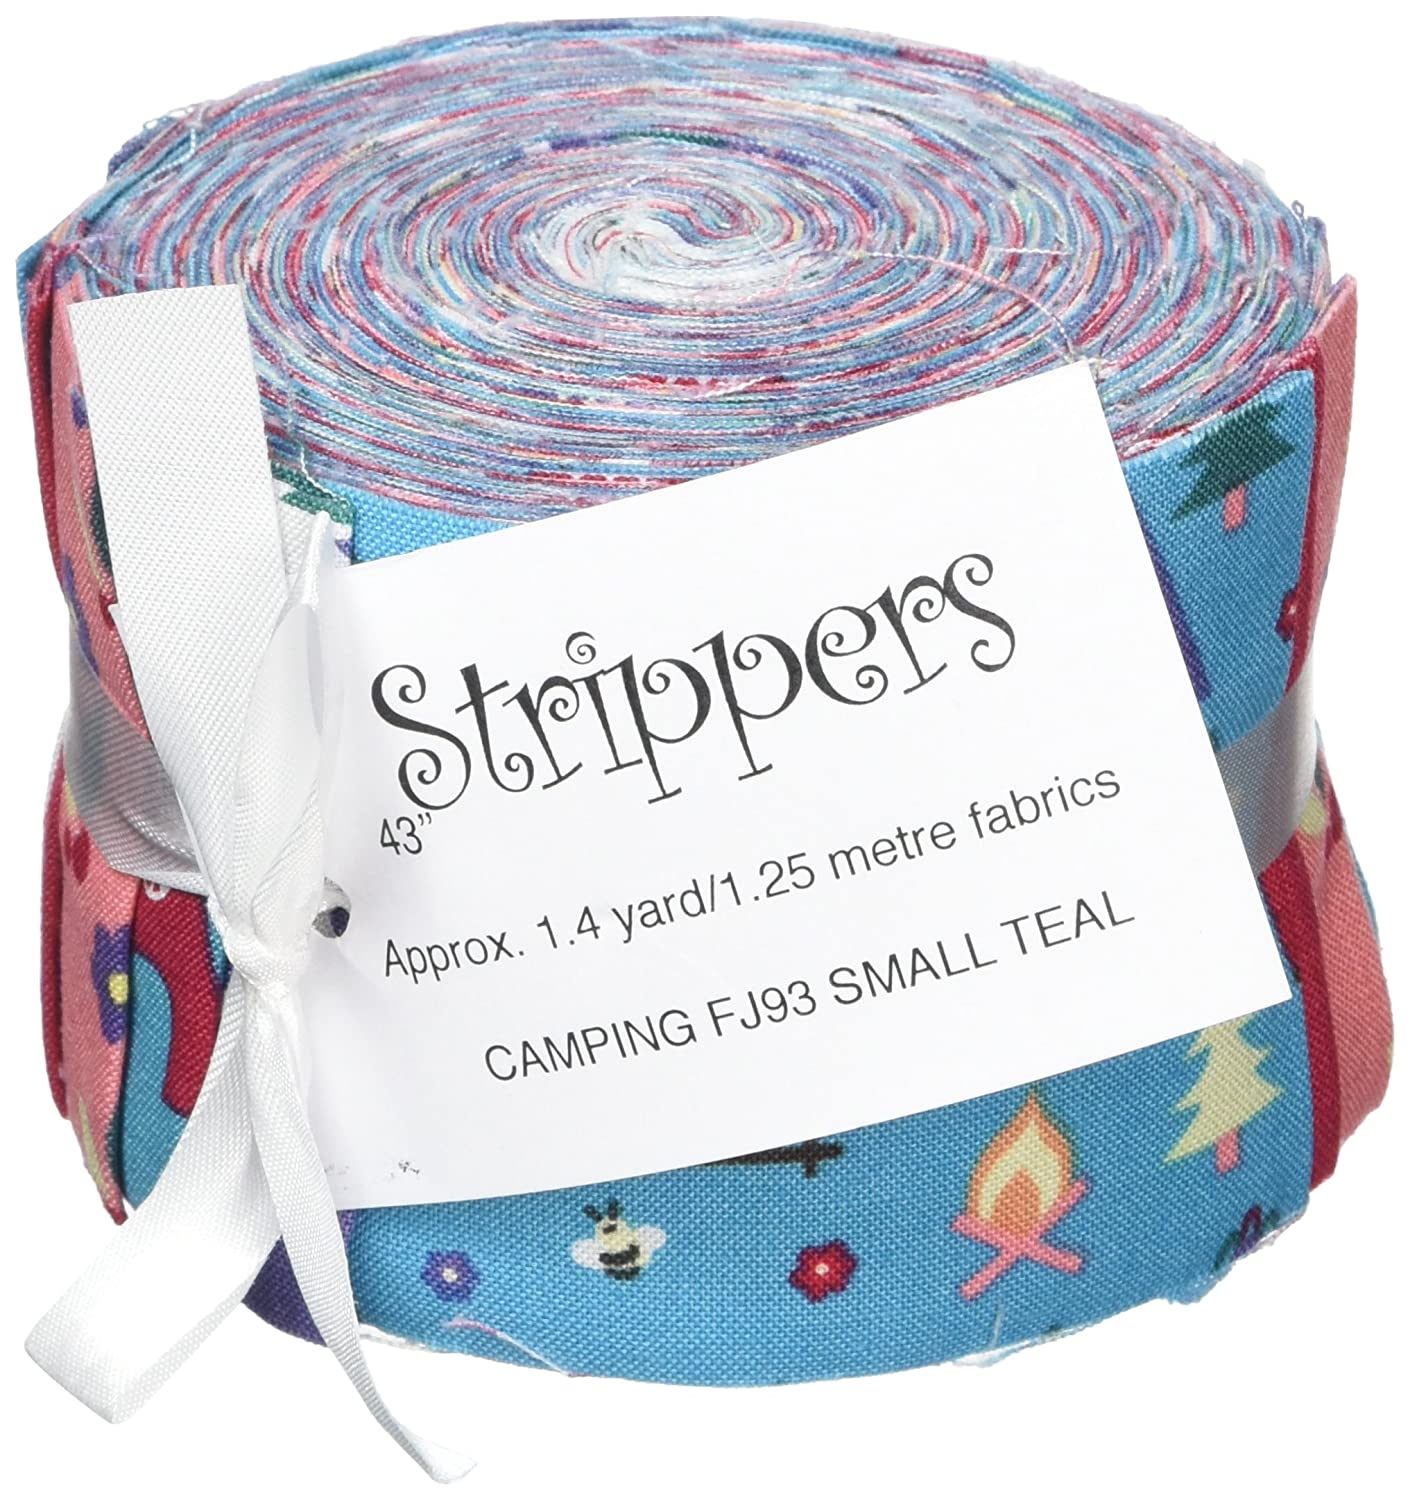 Fabric Freedom Camping Teal Jelly Baby Roll, 100% Cotton, Multicoloured, 9 x 9 x 7 cm FJ93M TEAL